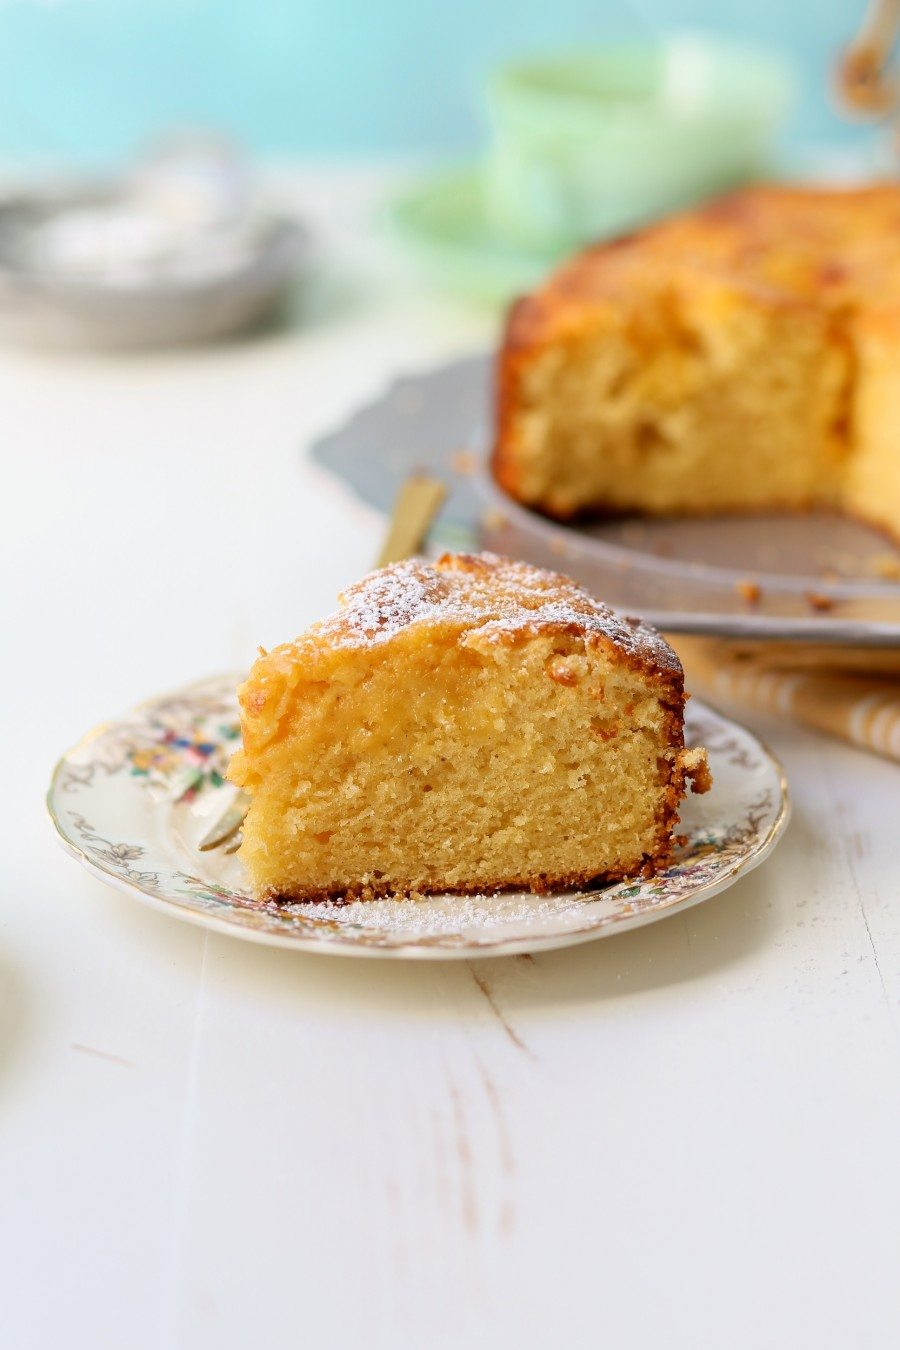 Grapefruit Curd in Grapefruit Cake